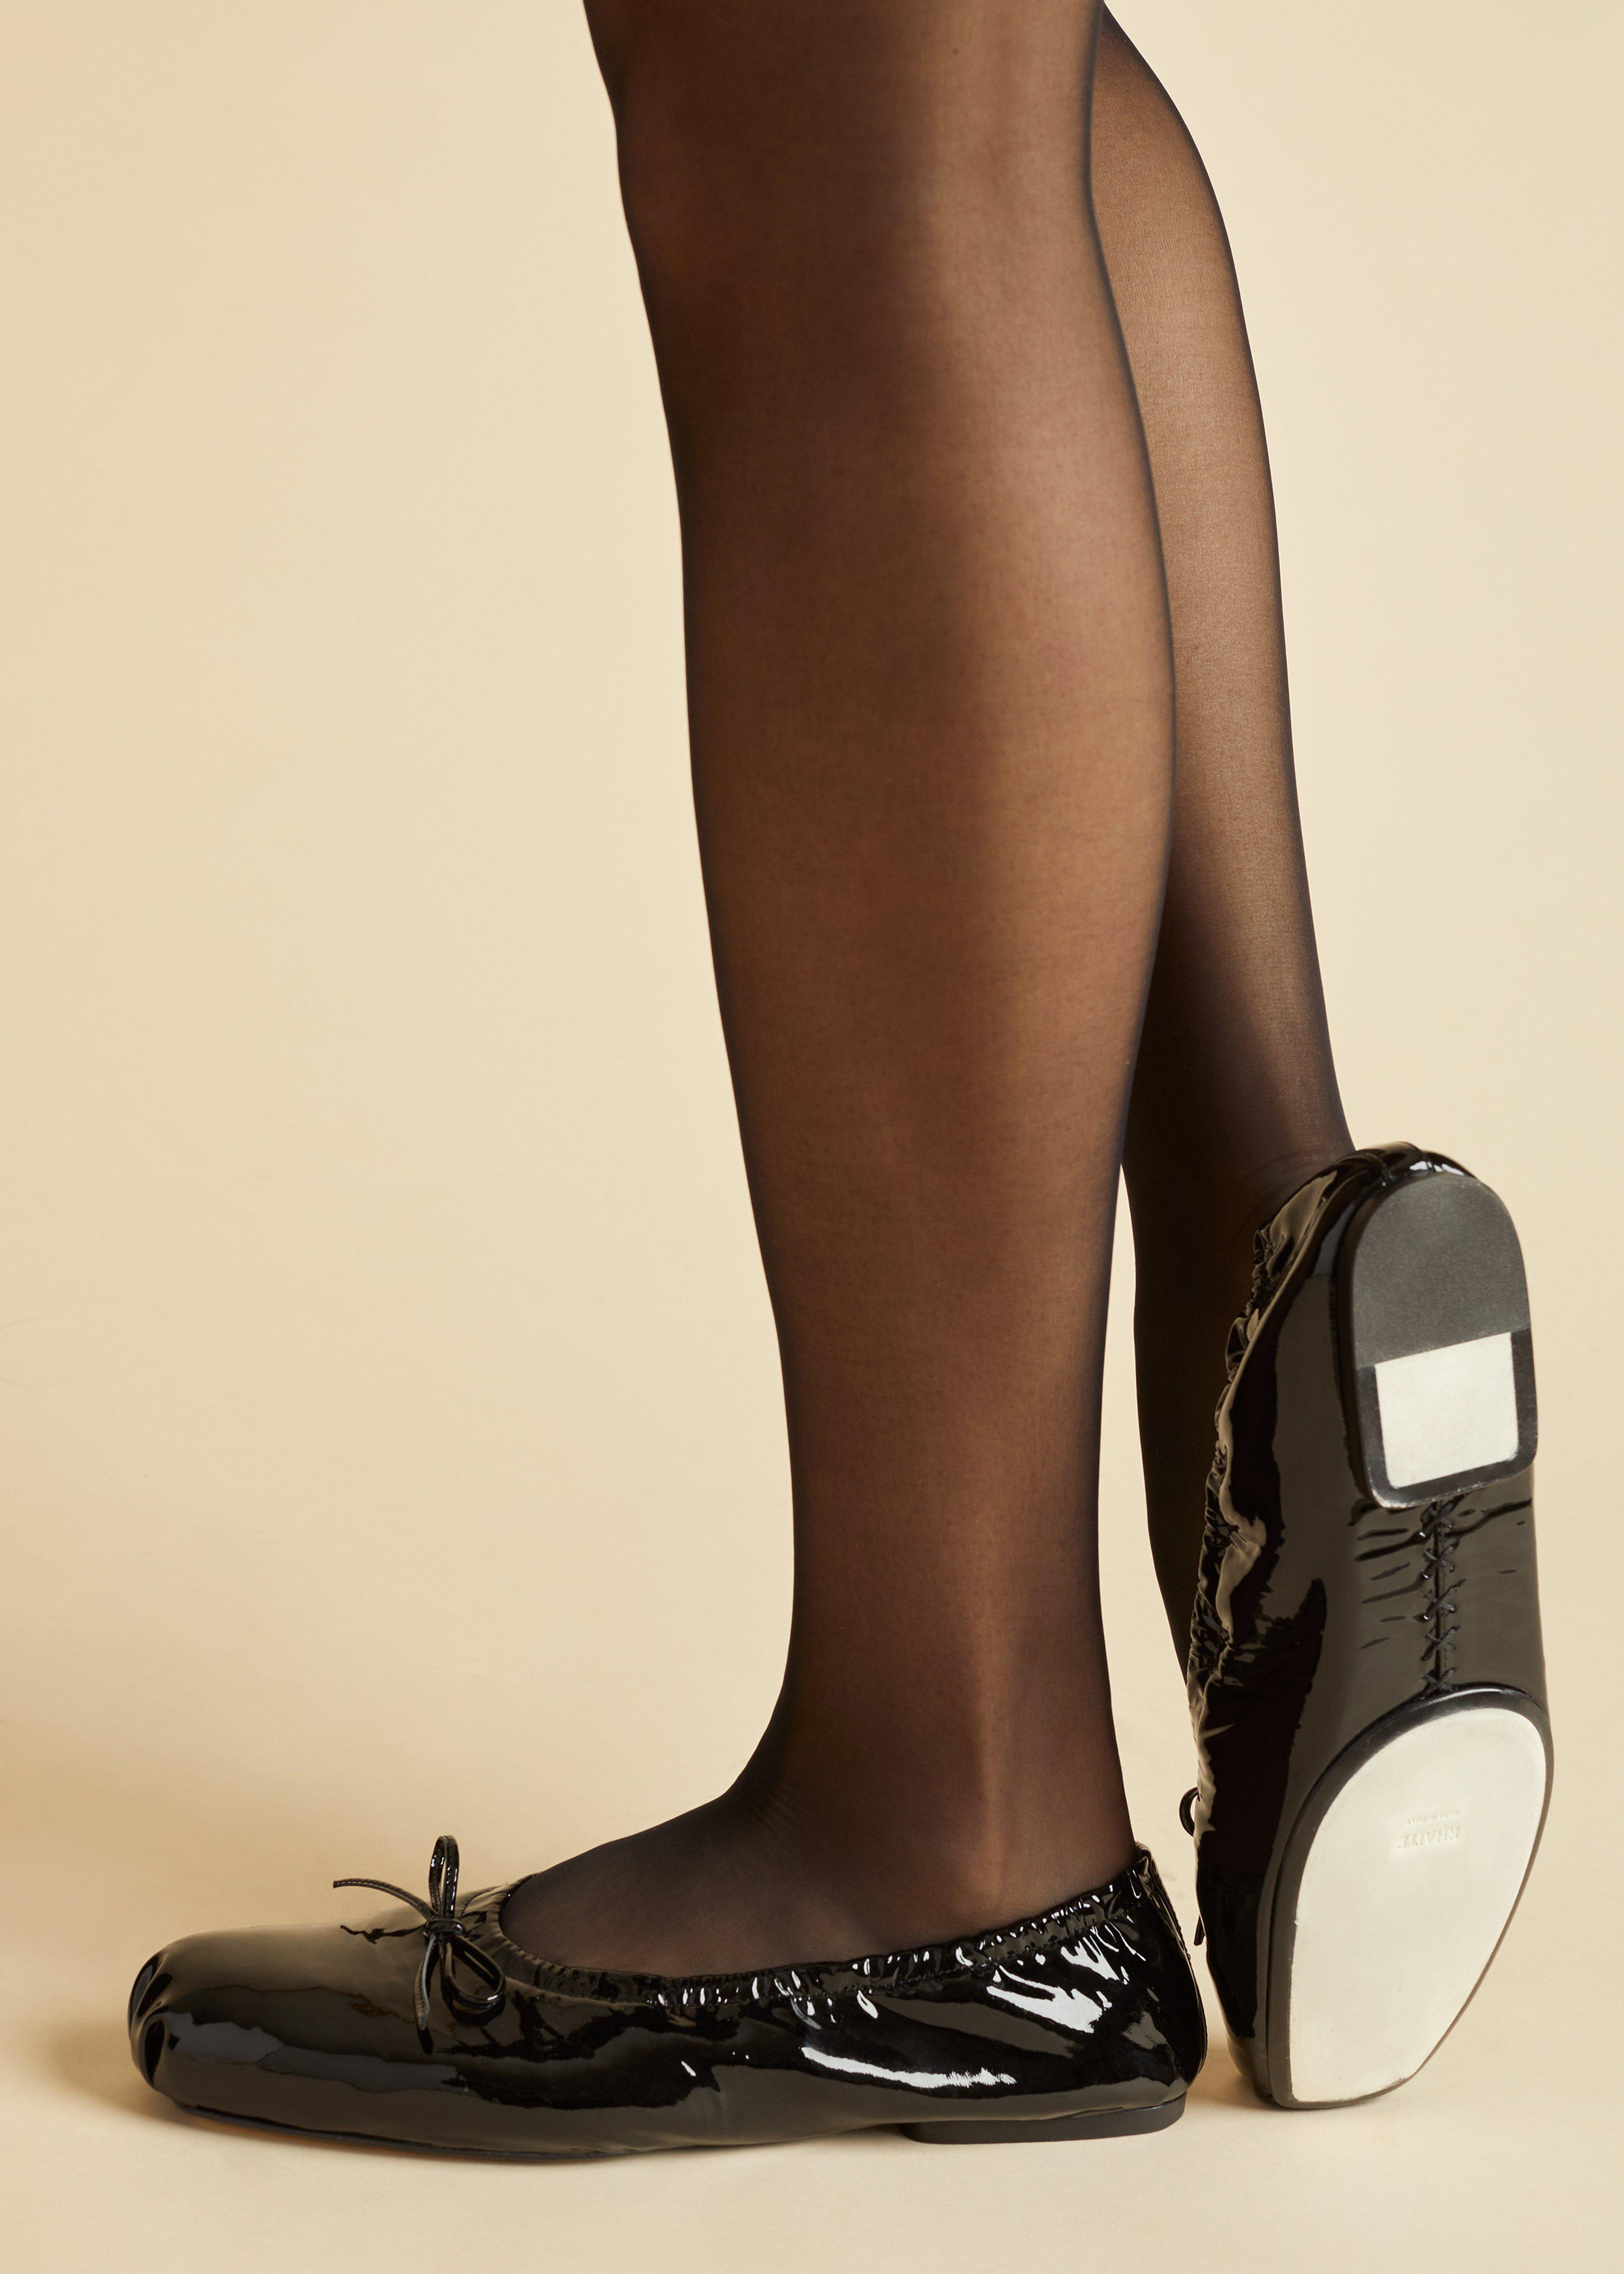 The Ashland Ballet Flat in Black Patent Leather 3